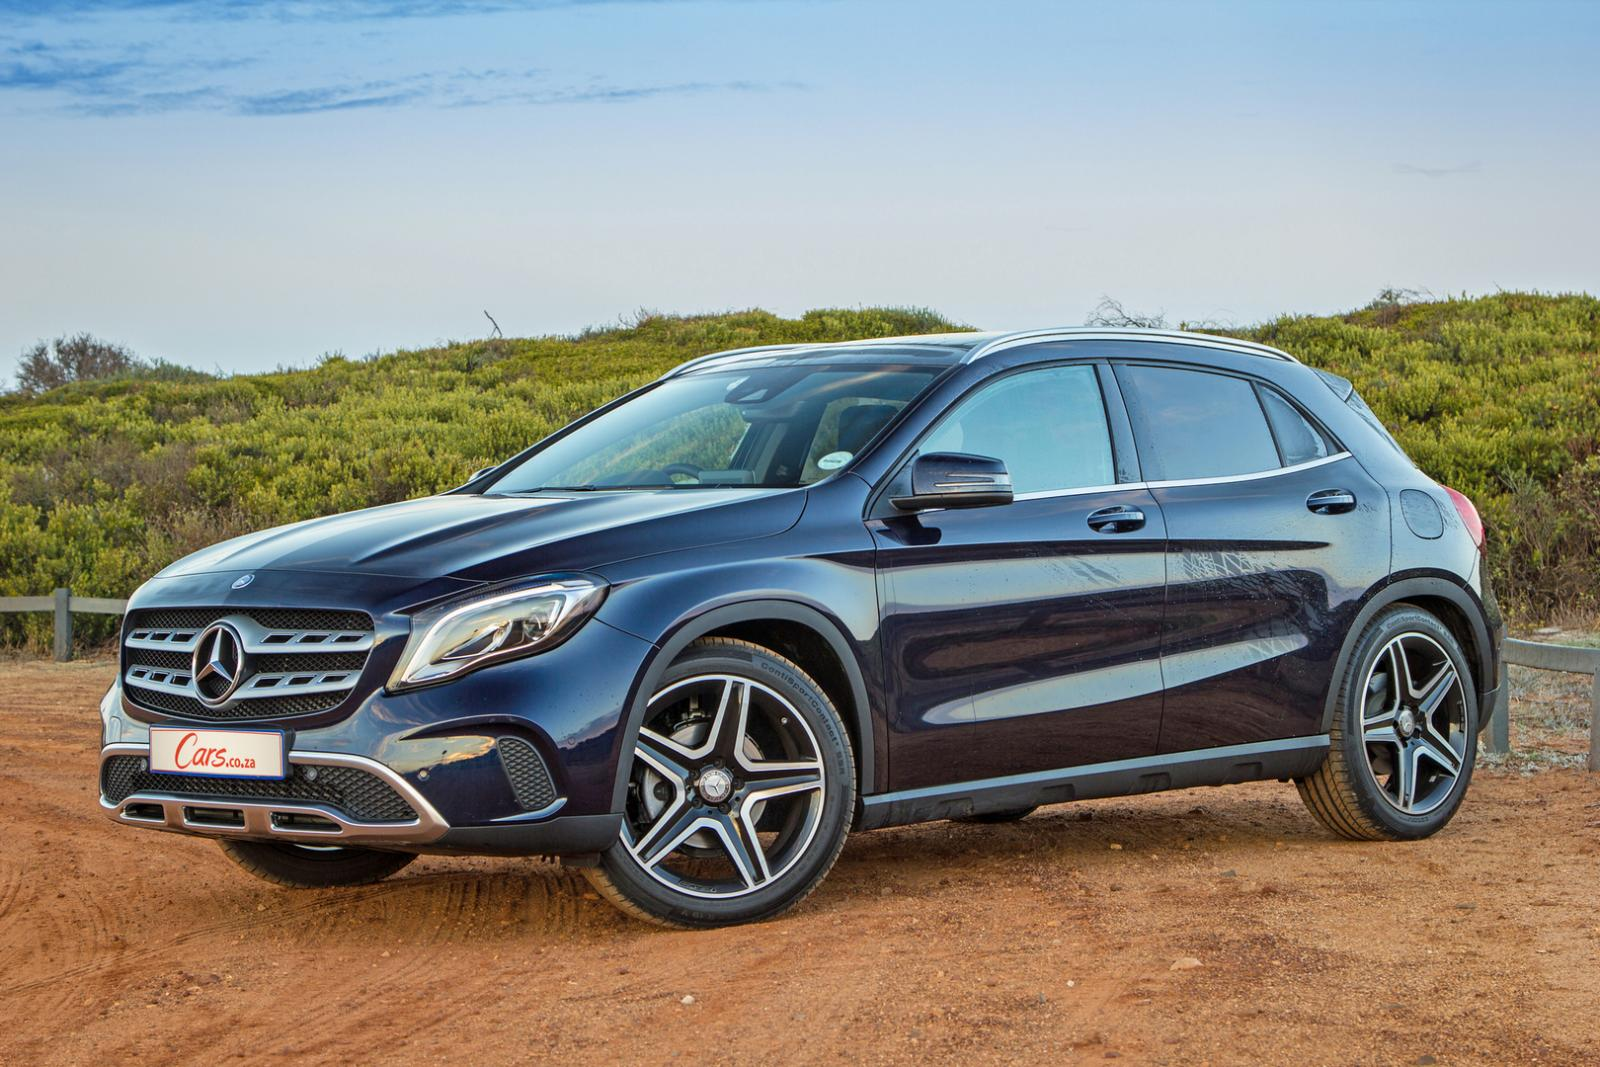 mercedes benz gla 220d 4matic 2017 quick review. Black Bedroom Furniture Sets. Home Design Ideas